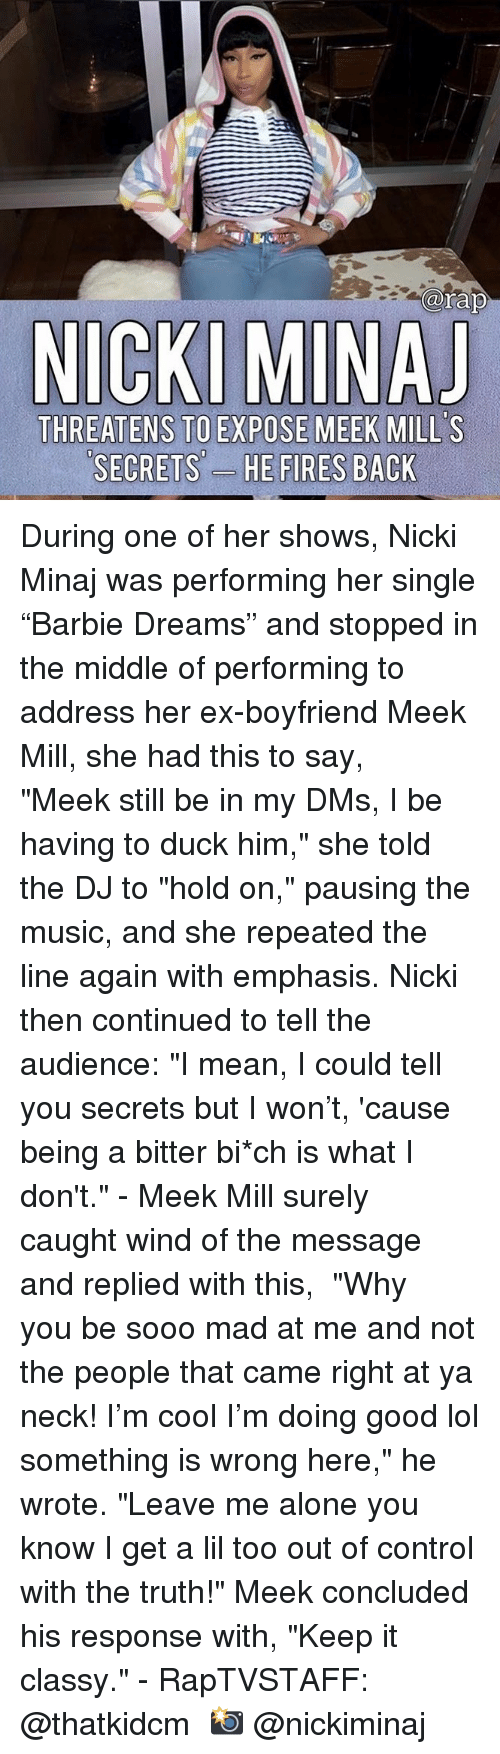 """Repeated: arap  THREATENS TO EXPOSE MEEK MILL'S  SECRETS'-  ES During one of her shows, Nicki Minaj was performing her single """"Barbie Dreams"""" and stopped in the middle of performing to address her ex-boyfriend Meek Mill, she had this to say,   """"Meek still be in my DMs, I be having to duck him,"""" she told the DJ to """"hold on,"""" pausing the music, and she repeated the line again with emphasis. Nicki then continued to tell the audience: """"I mean, I could tell you secrets but I won't, 'cause being a bitter bi*ch is what I don't."""" - Meek Mill surely caught wind of the message and replied with this,  """"Why you be sooo mad at me and not the people that came right at ya neck! I'm cool I'm doing good lol something is wrong here,"""" he wrote. """"Leave me alone you know I get a lil too out of control with the truth!"""" Meek concluded his response with, """"Keep it classy."""" - RapTVSTAFF: @thatkidcm 📸 @nickiminaj"""